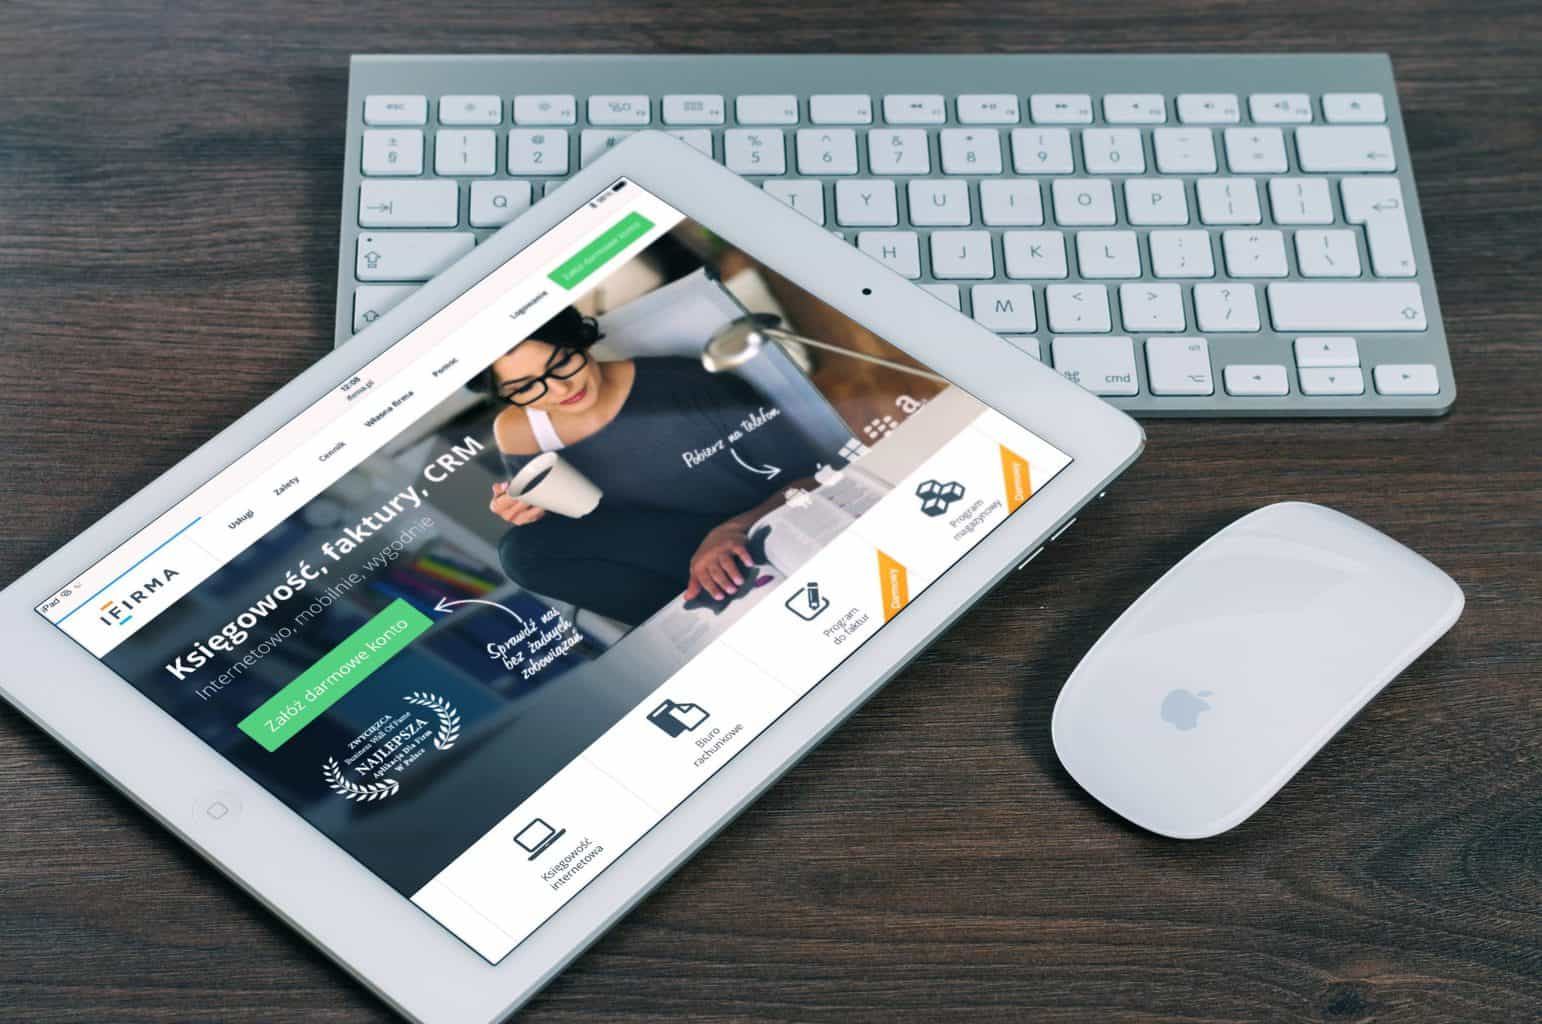 Wireless mouse being used with an iPad while a wireless keyboard is on the background